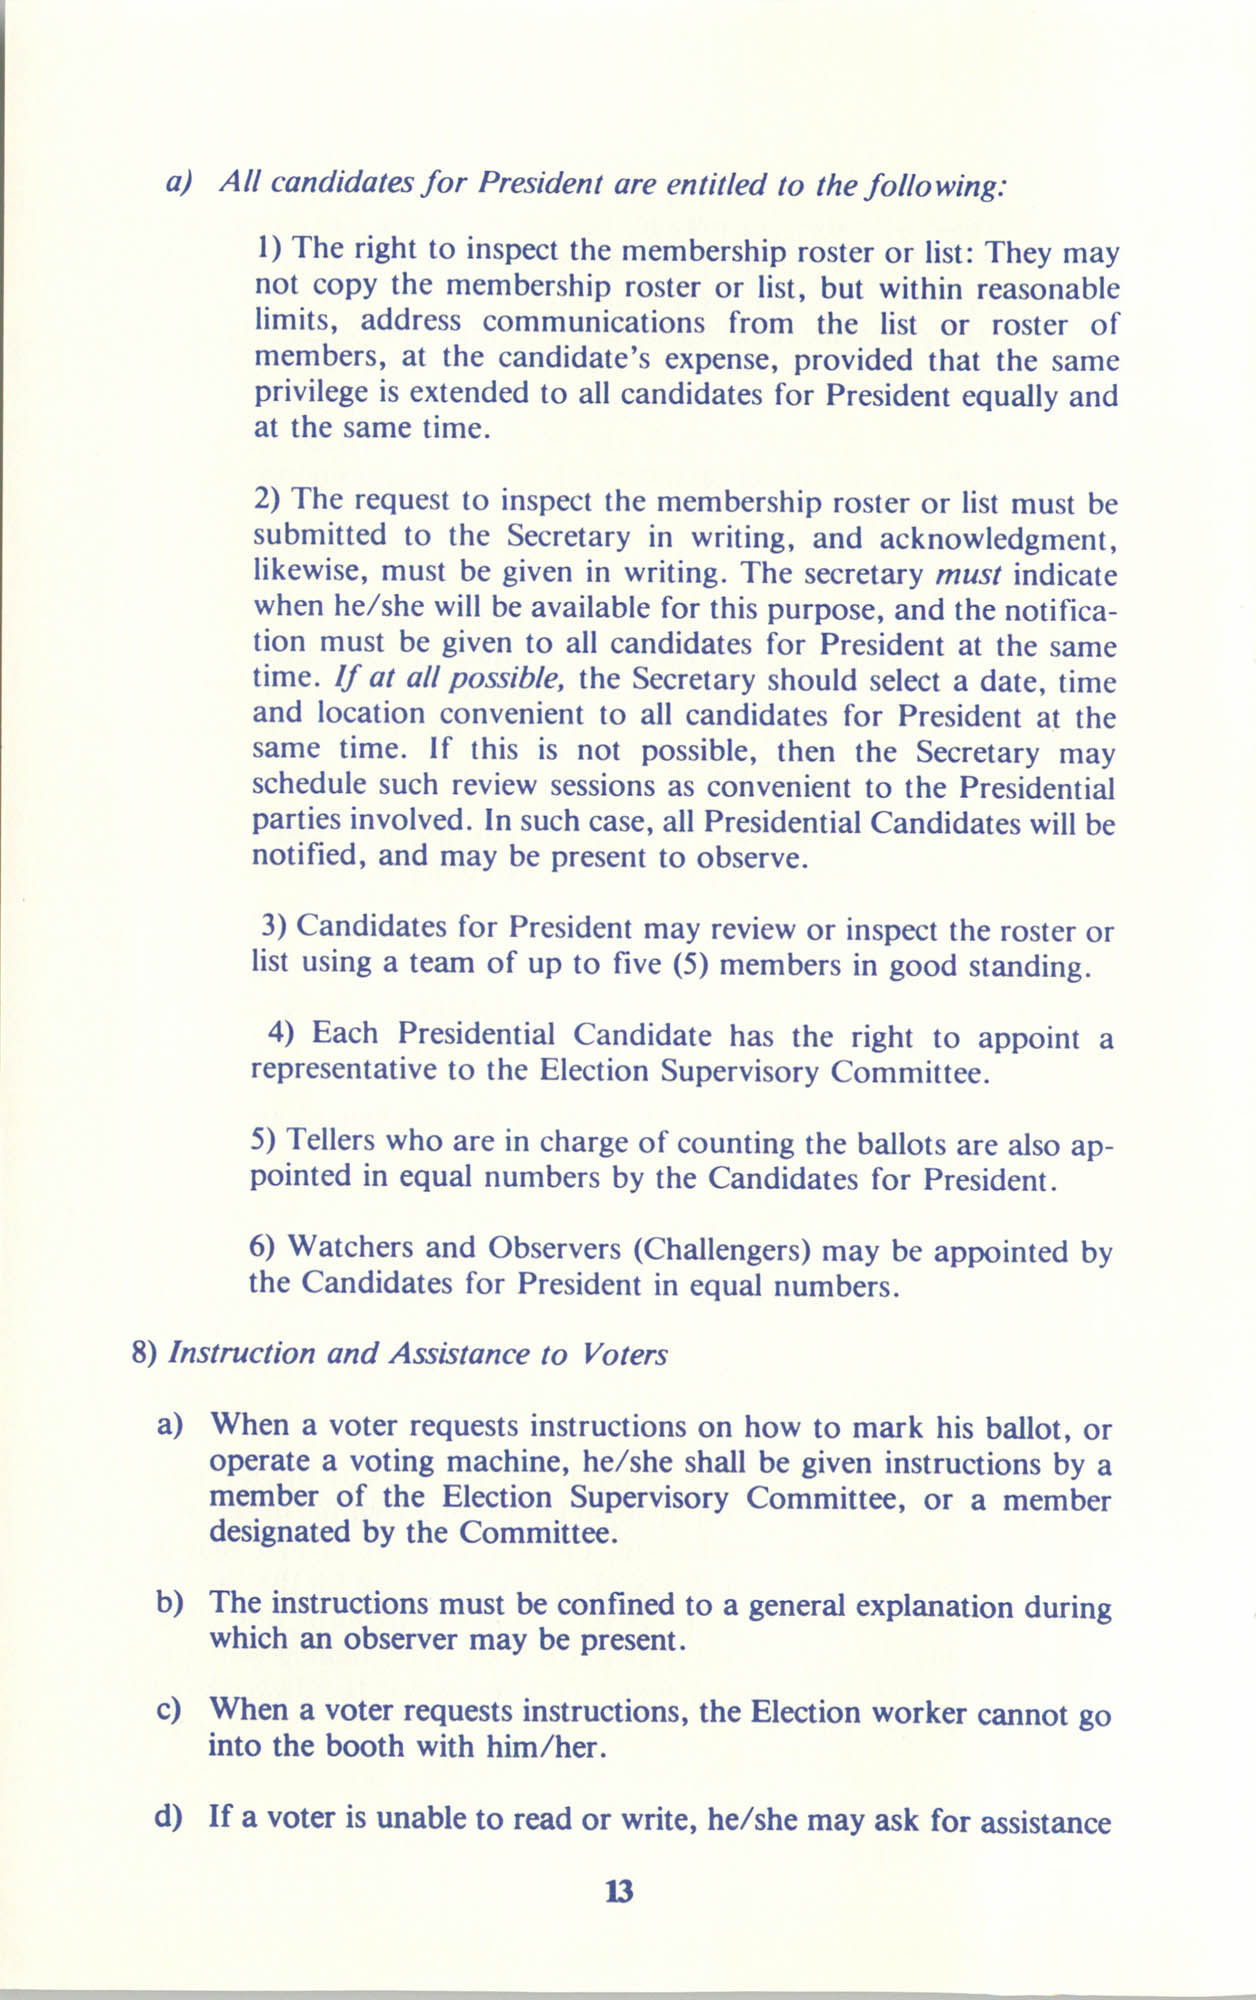 Manual on Branch Election Procedure, Page 13